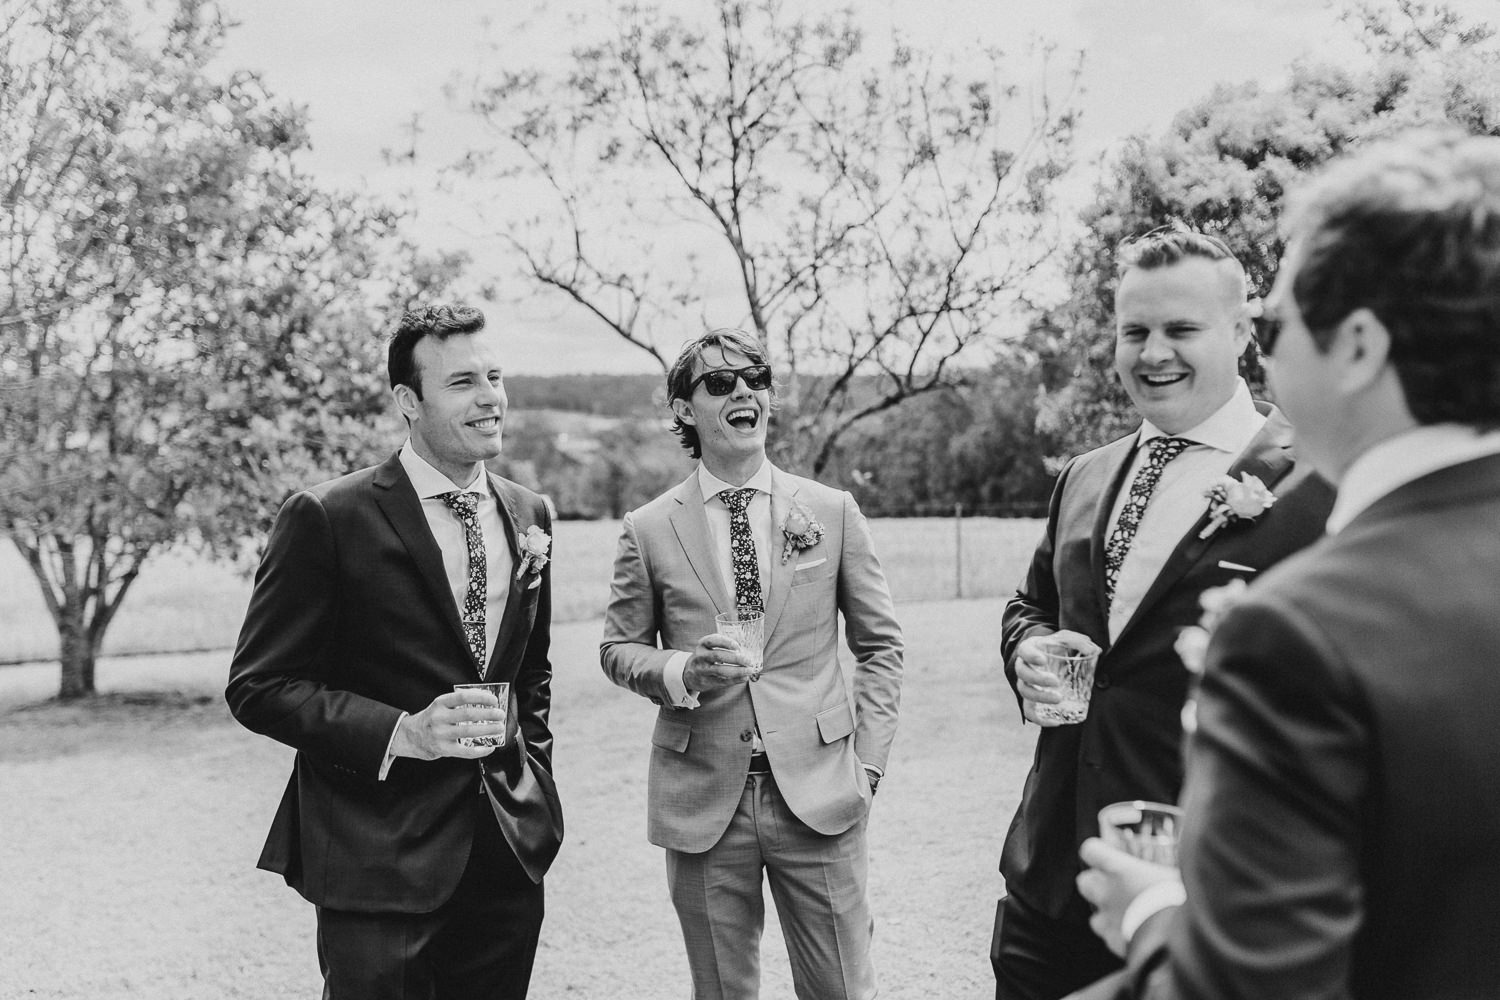 briars-country-lodge-wedding-bowral-nsw-miriam-andy-11